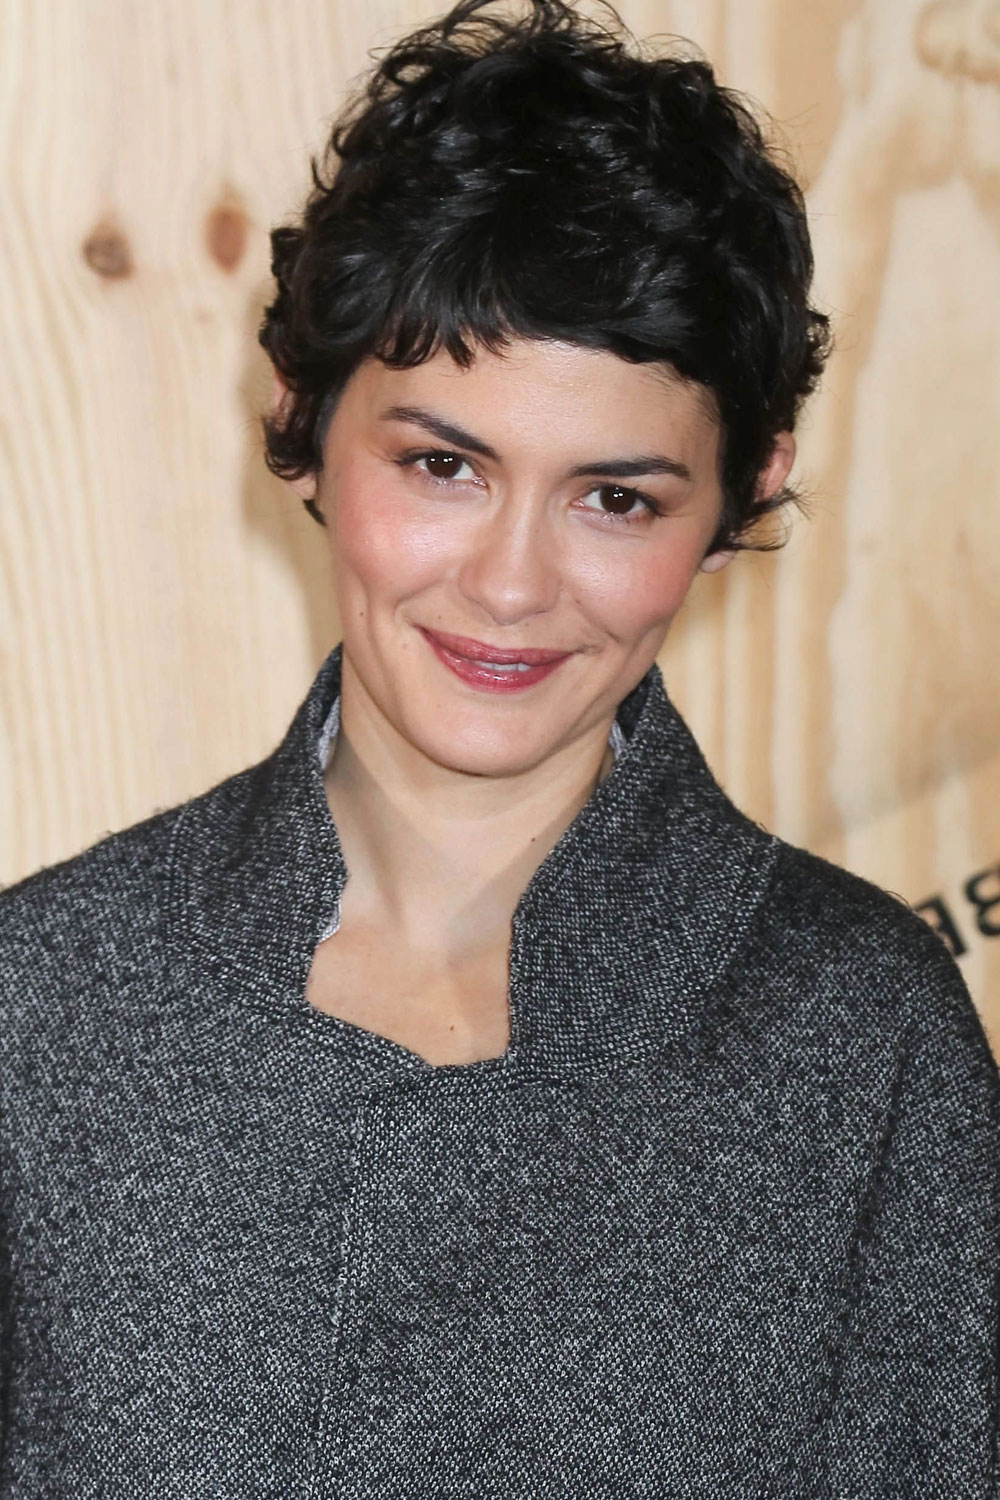 Audrey Tautou With A Messy Pixie Crop – The Hair 100: Top Celebrity Throughout Audrey Tautou Short Haircuts (Gallery 5 of 25)